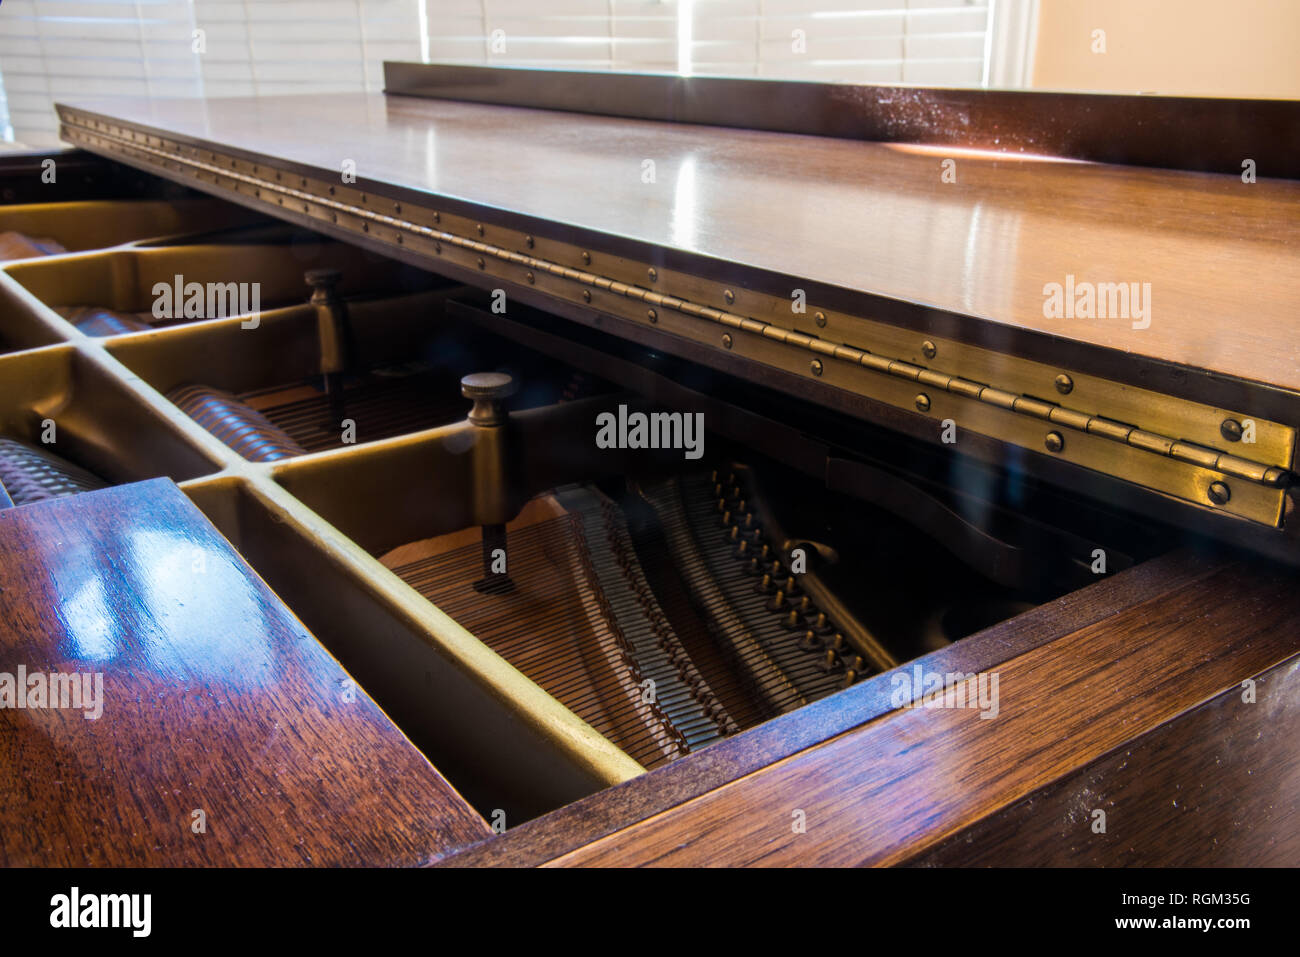 Piano hinge and sound board on a grand piano. - Stock Image